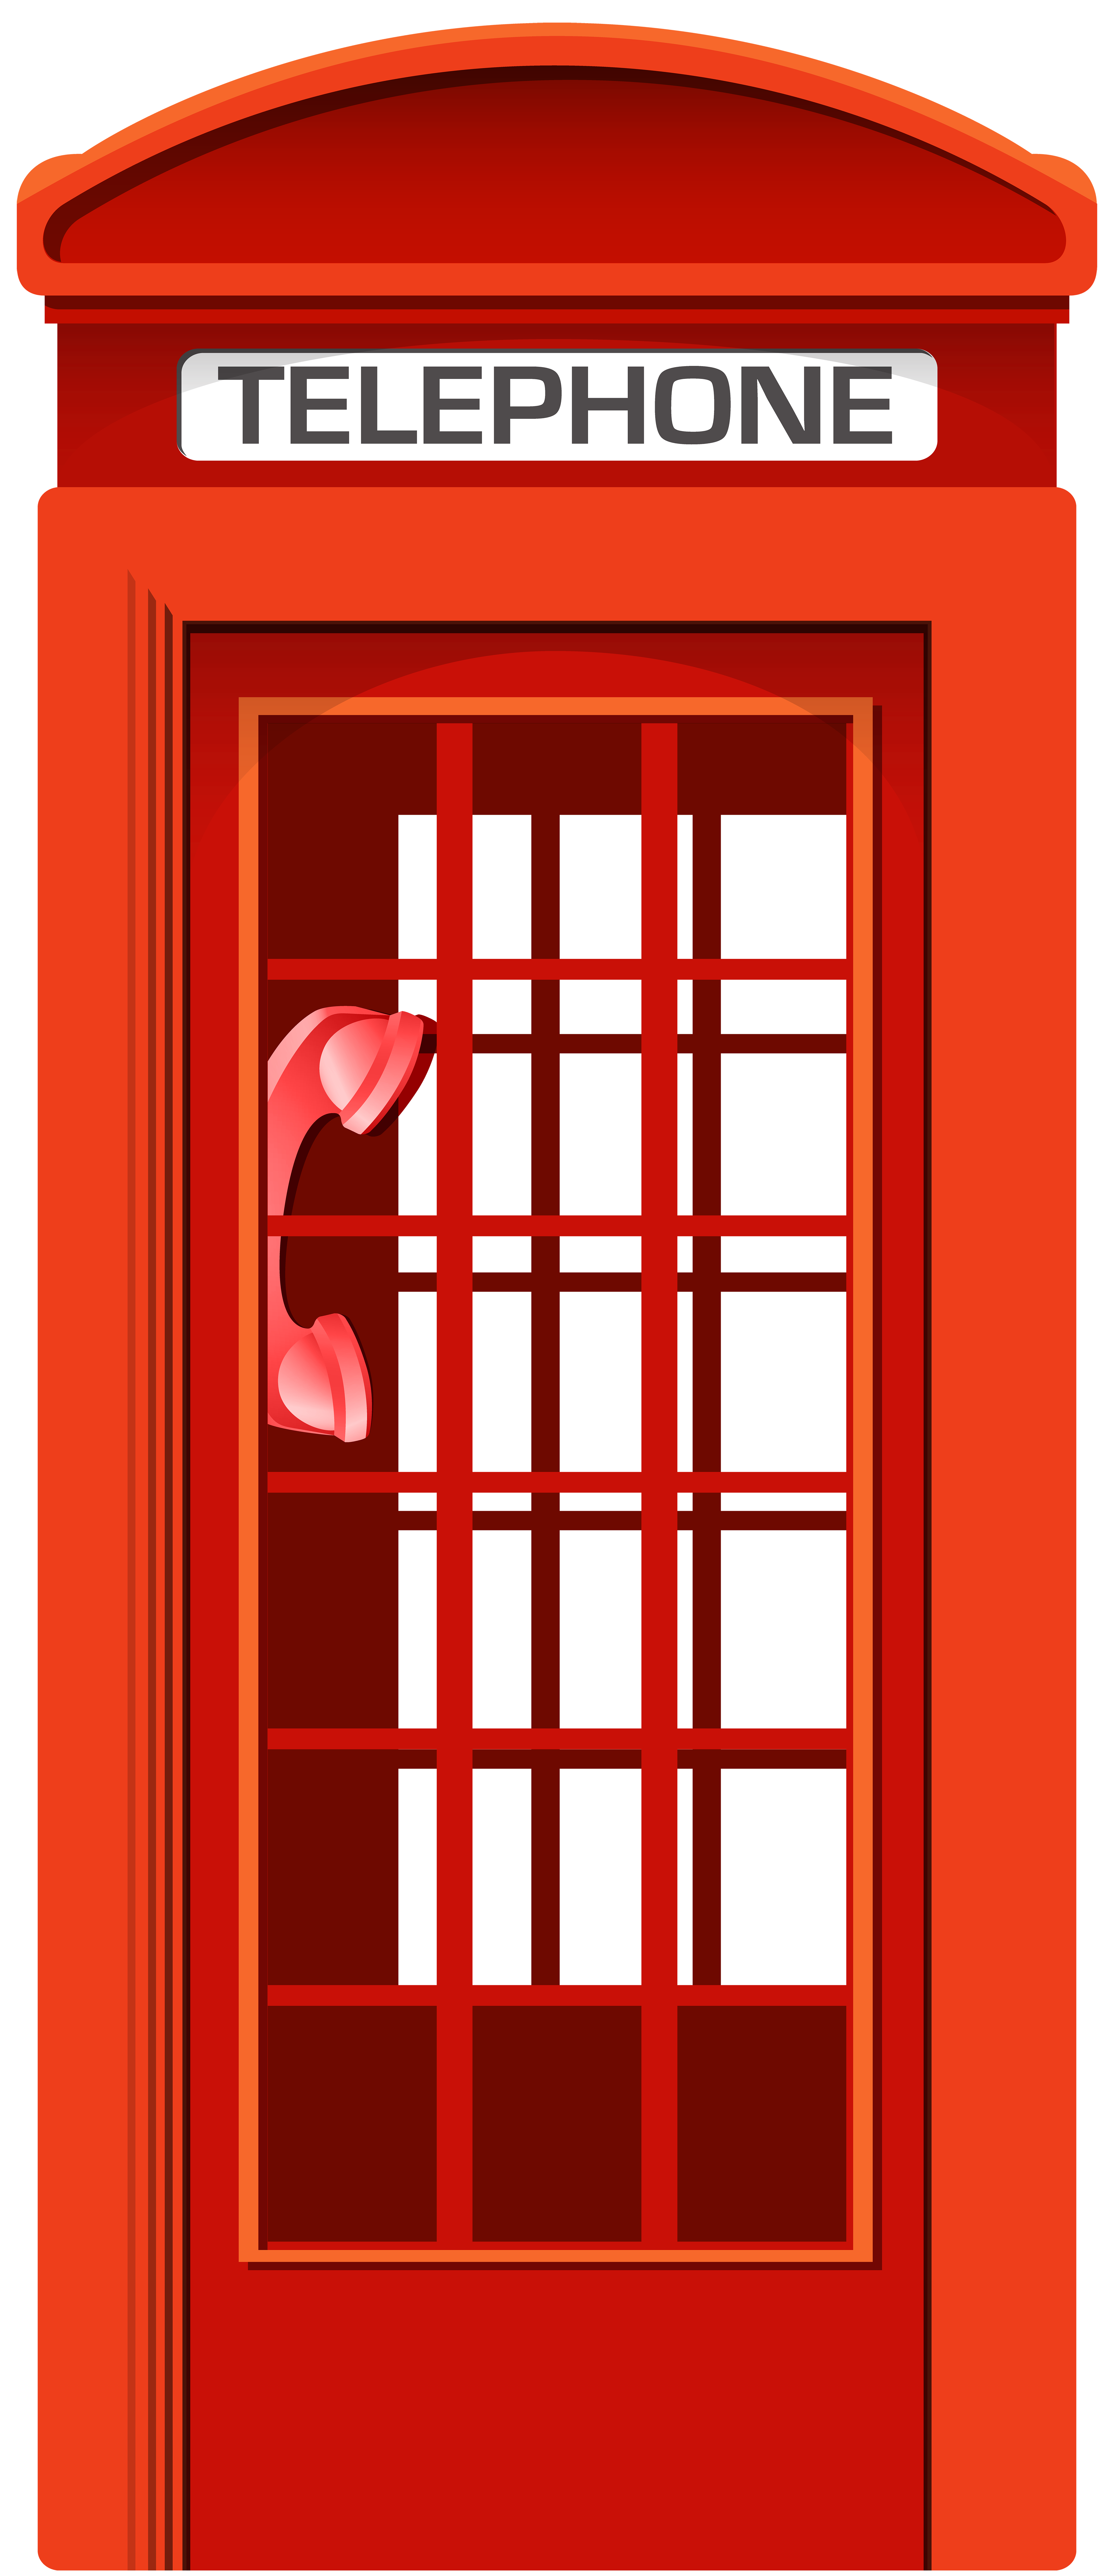 English booth png best. Telephone clipart red telephone